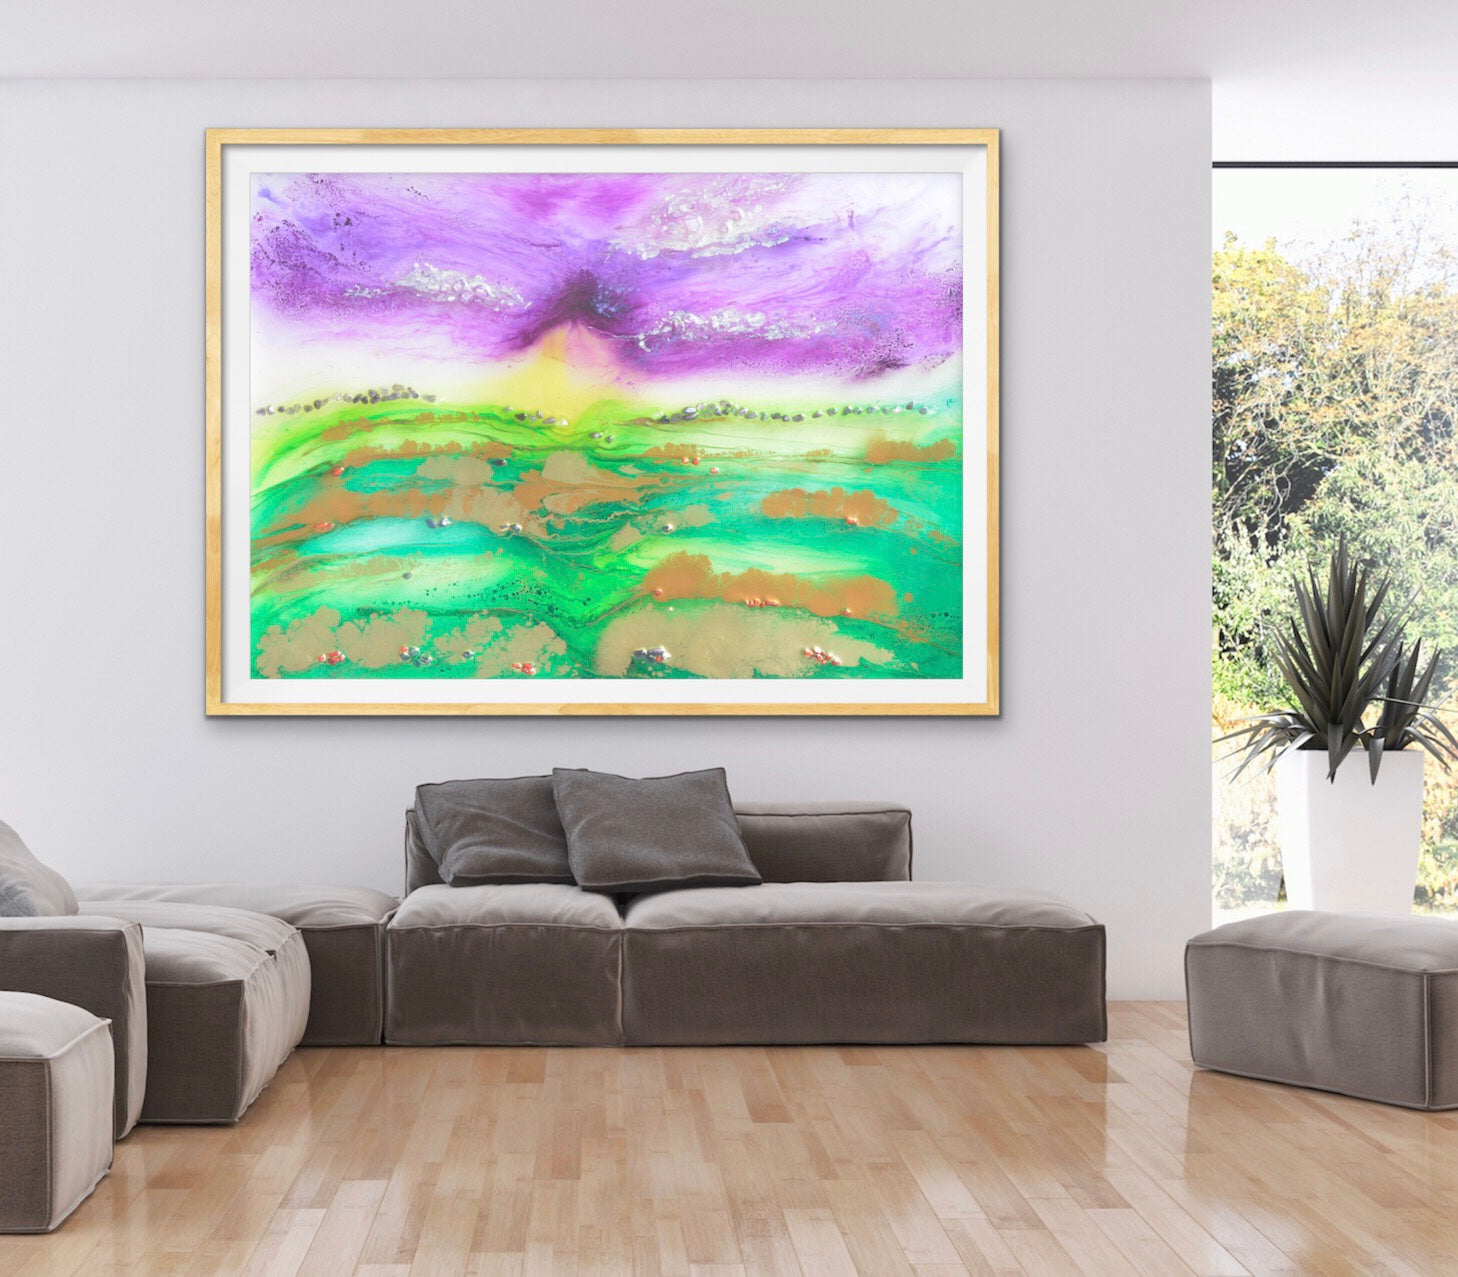 Bali Green. Abstract Limited Edition Print. Antuanelle 6